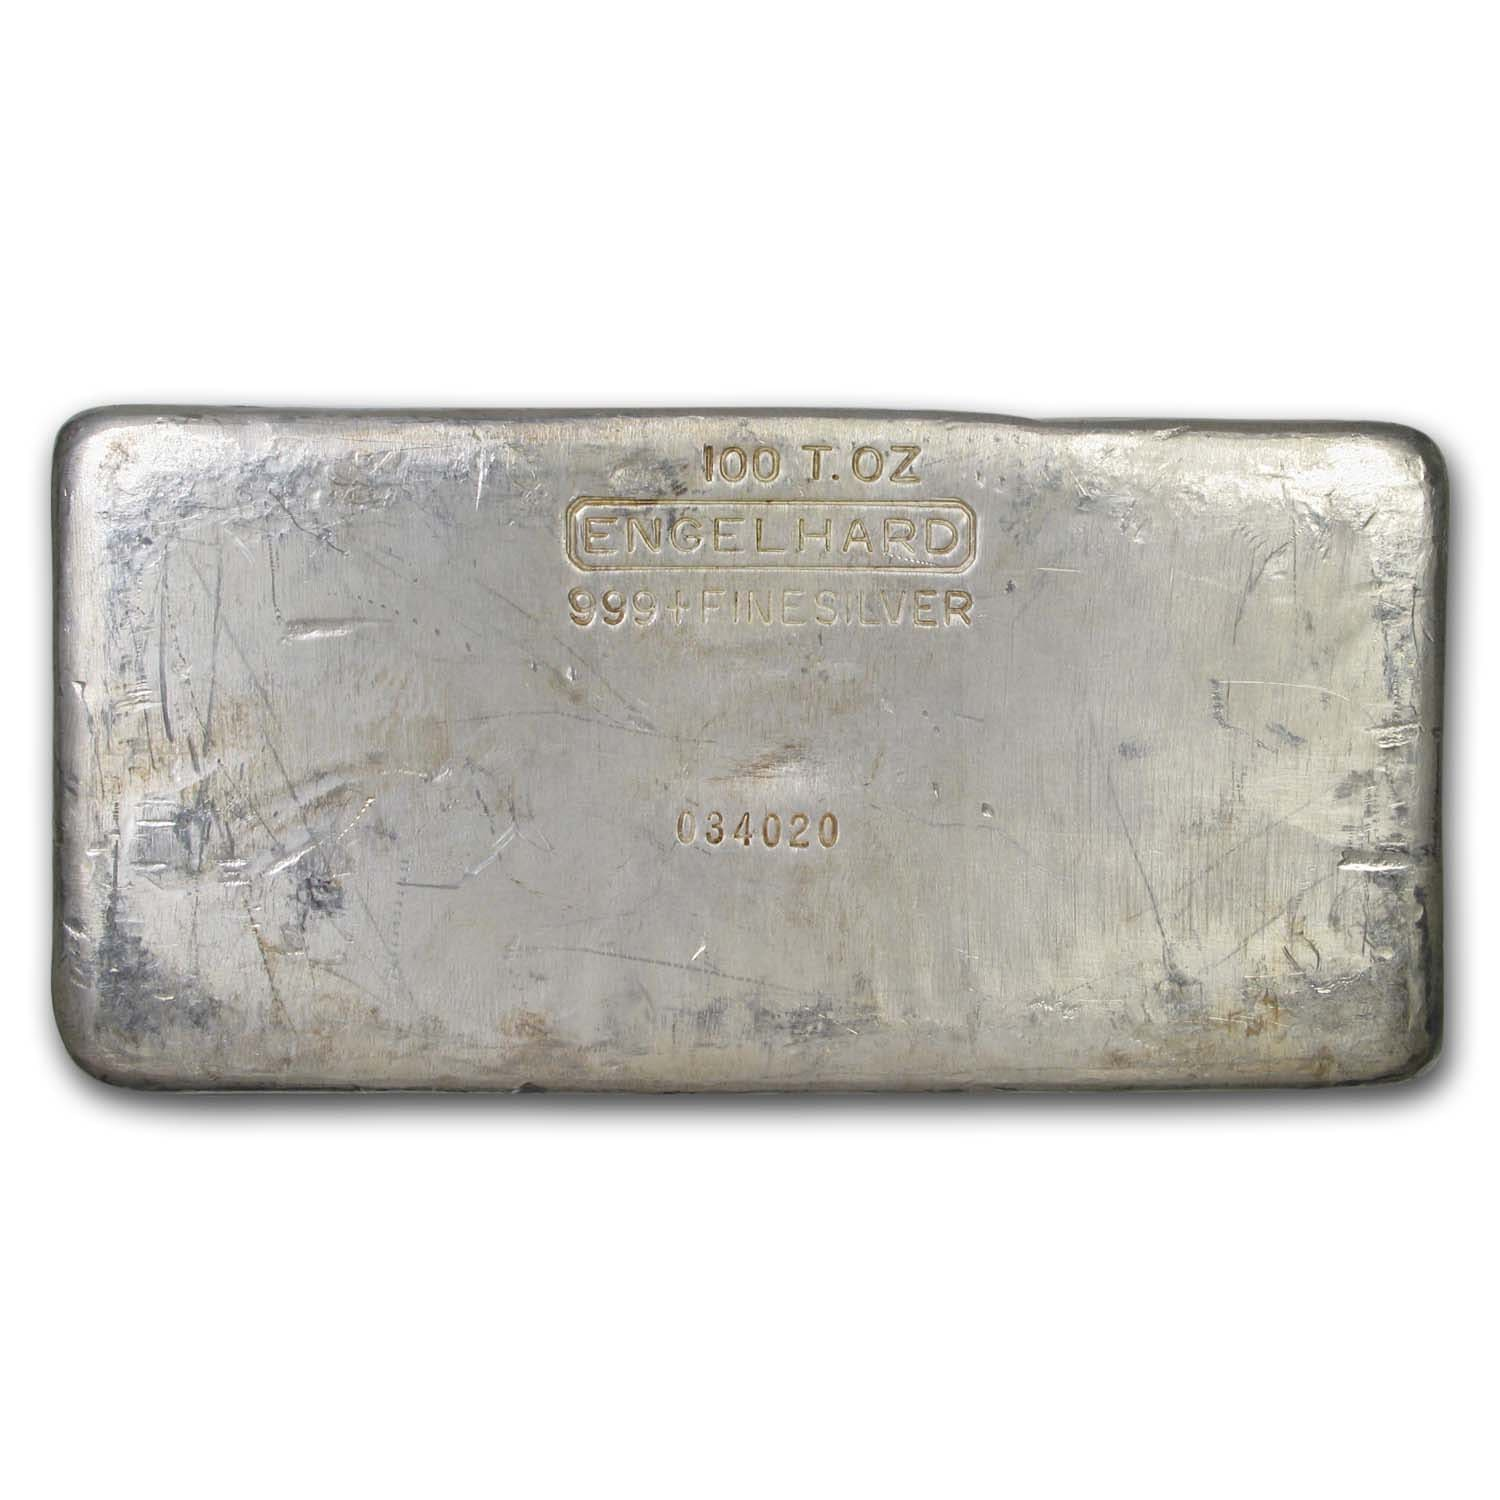 100 oz Silver Bar - Engelhard (Second Generation/Poured)